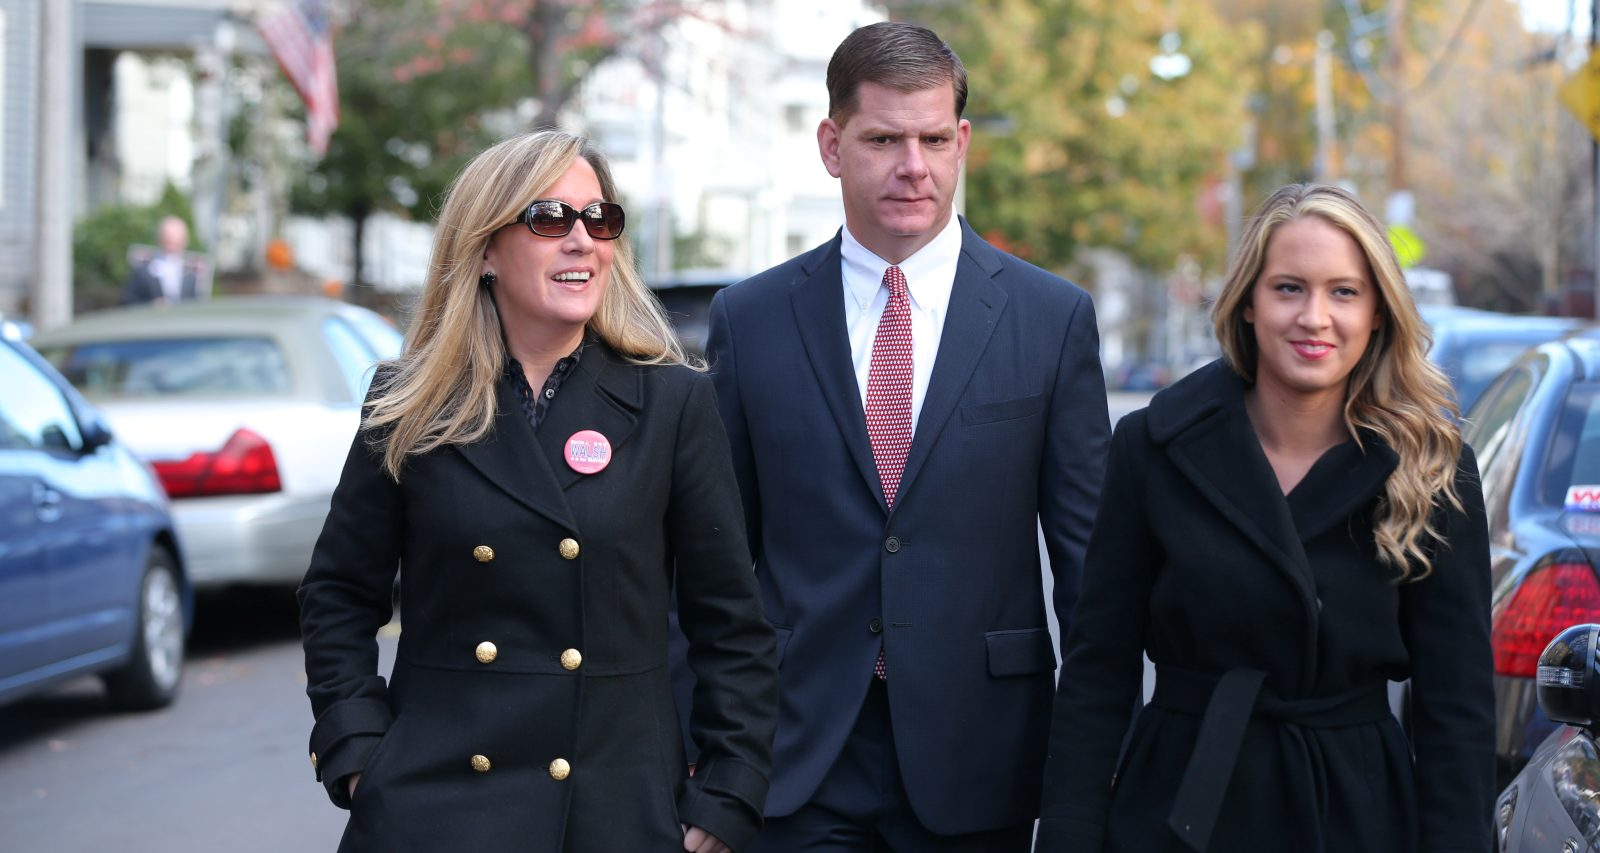 Lorrie Higgins, Marty Walsh and Lauren Campbell